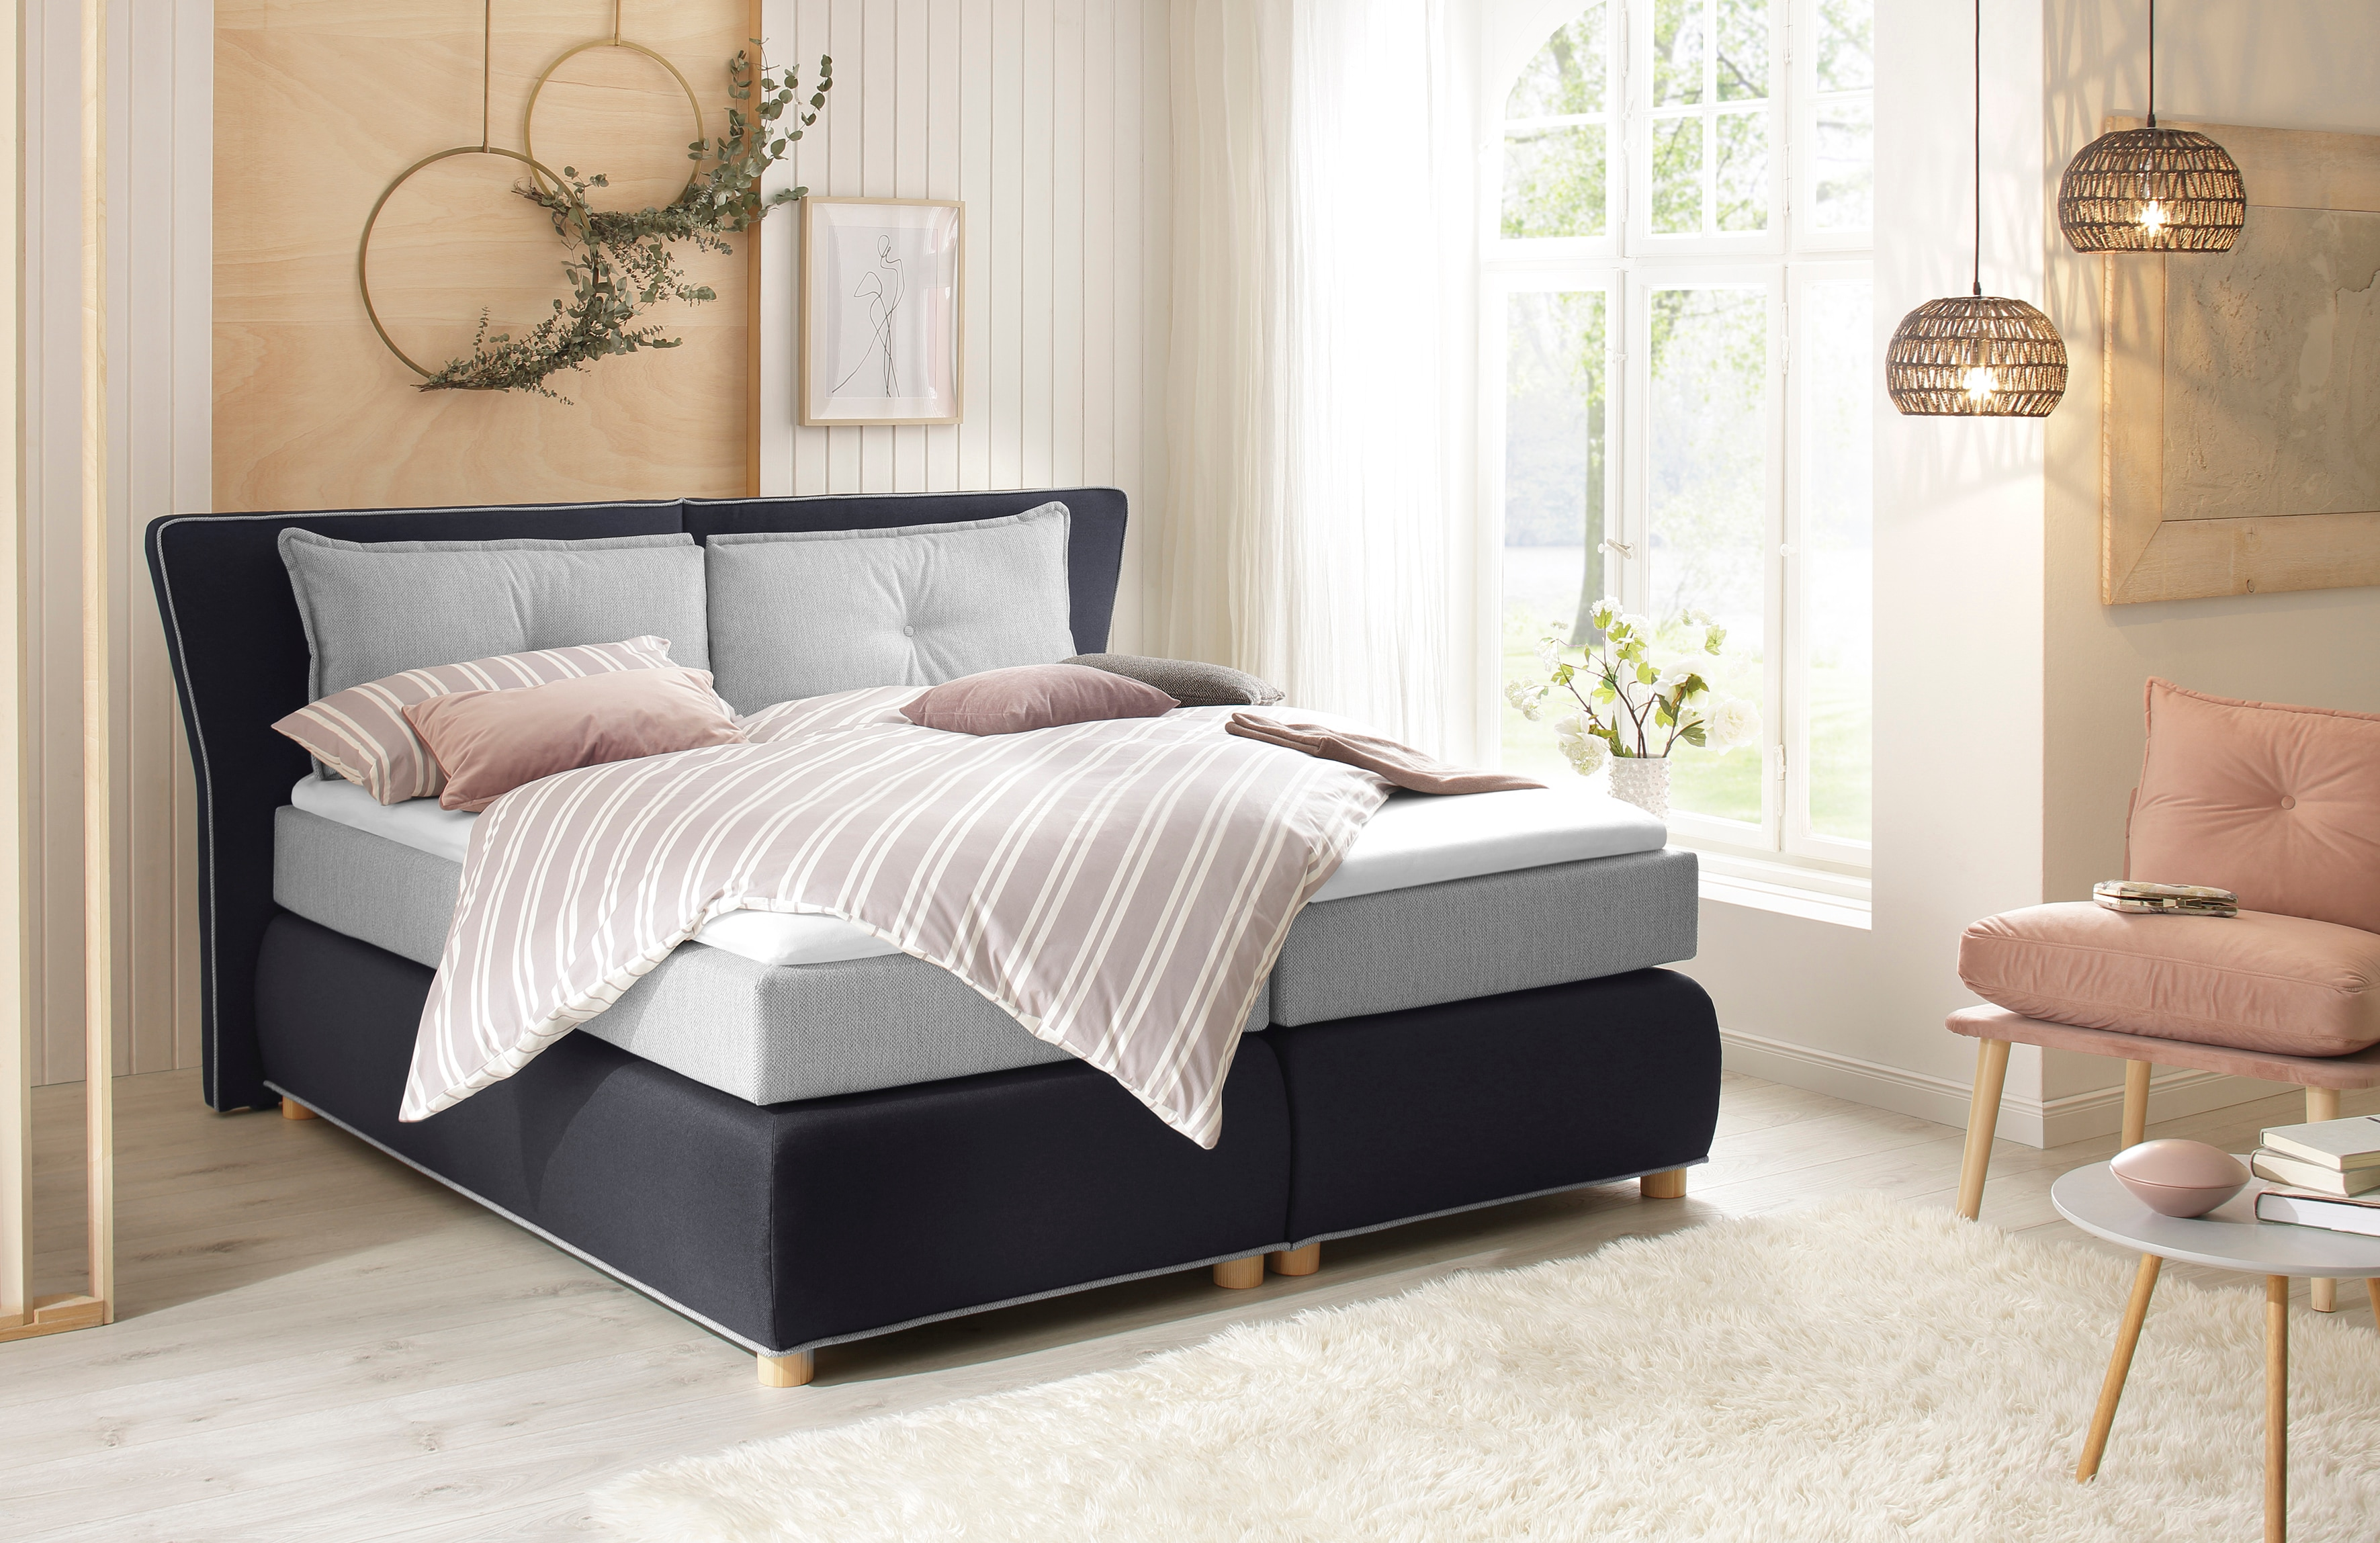 Home affaire Boxspringbett FLORES